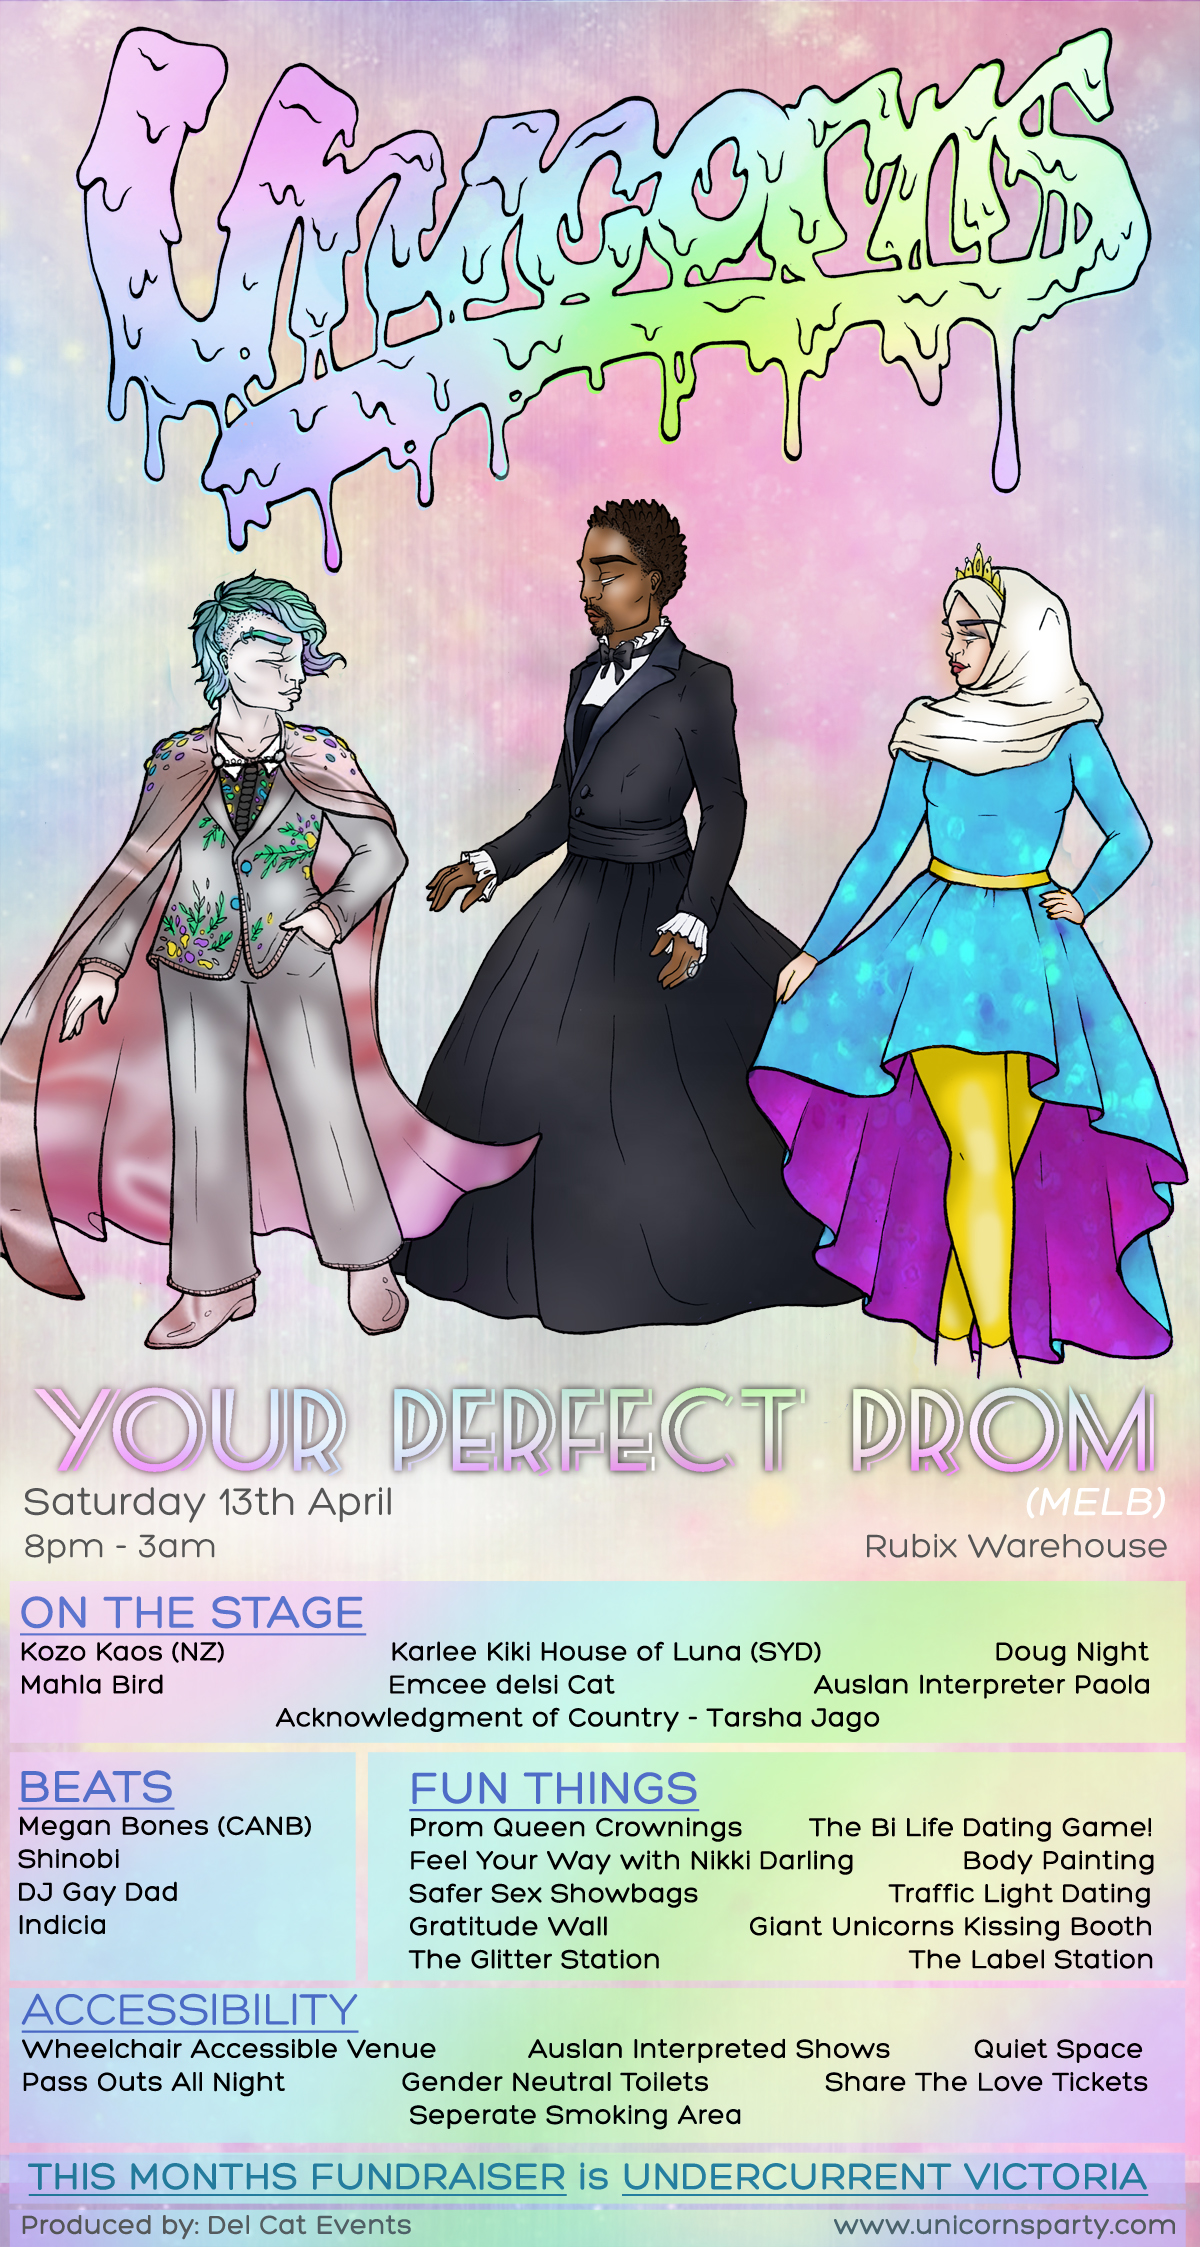 Unicorns - Your Perfect Prom (MELB) - Sat 13 April8pm - 3amRubix WarehouseTIX HERE